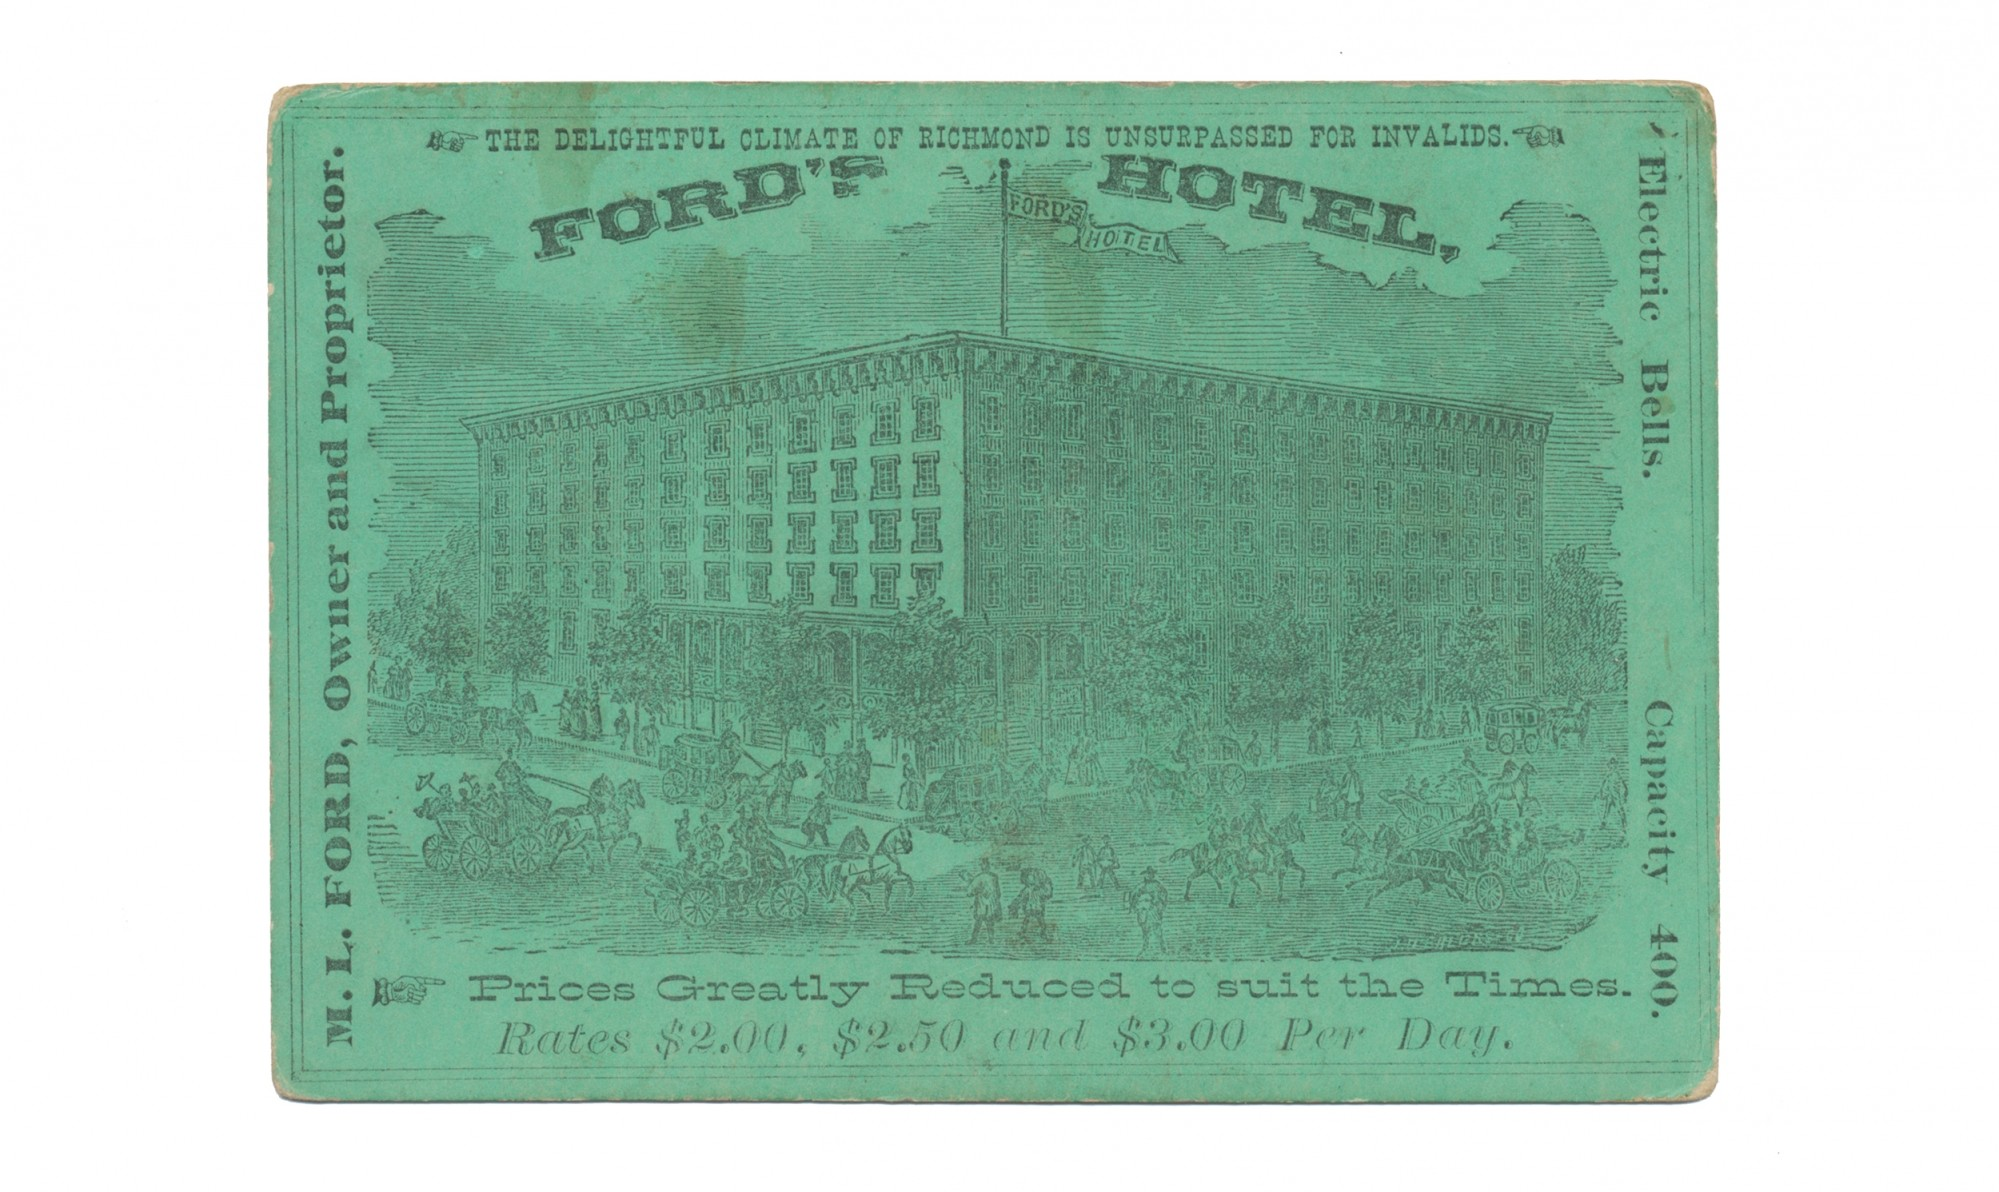 ADVERTISING CARD – FORD'S HOTEL, RICHMOND, VA